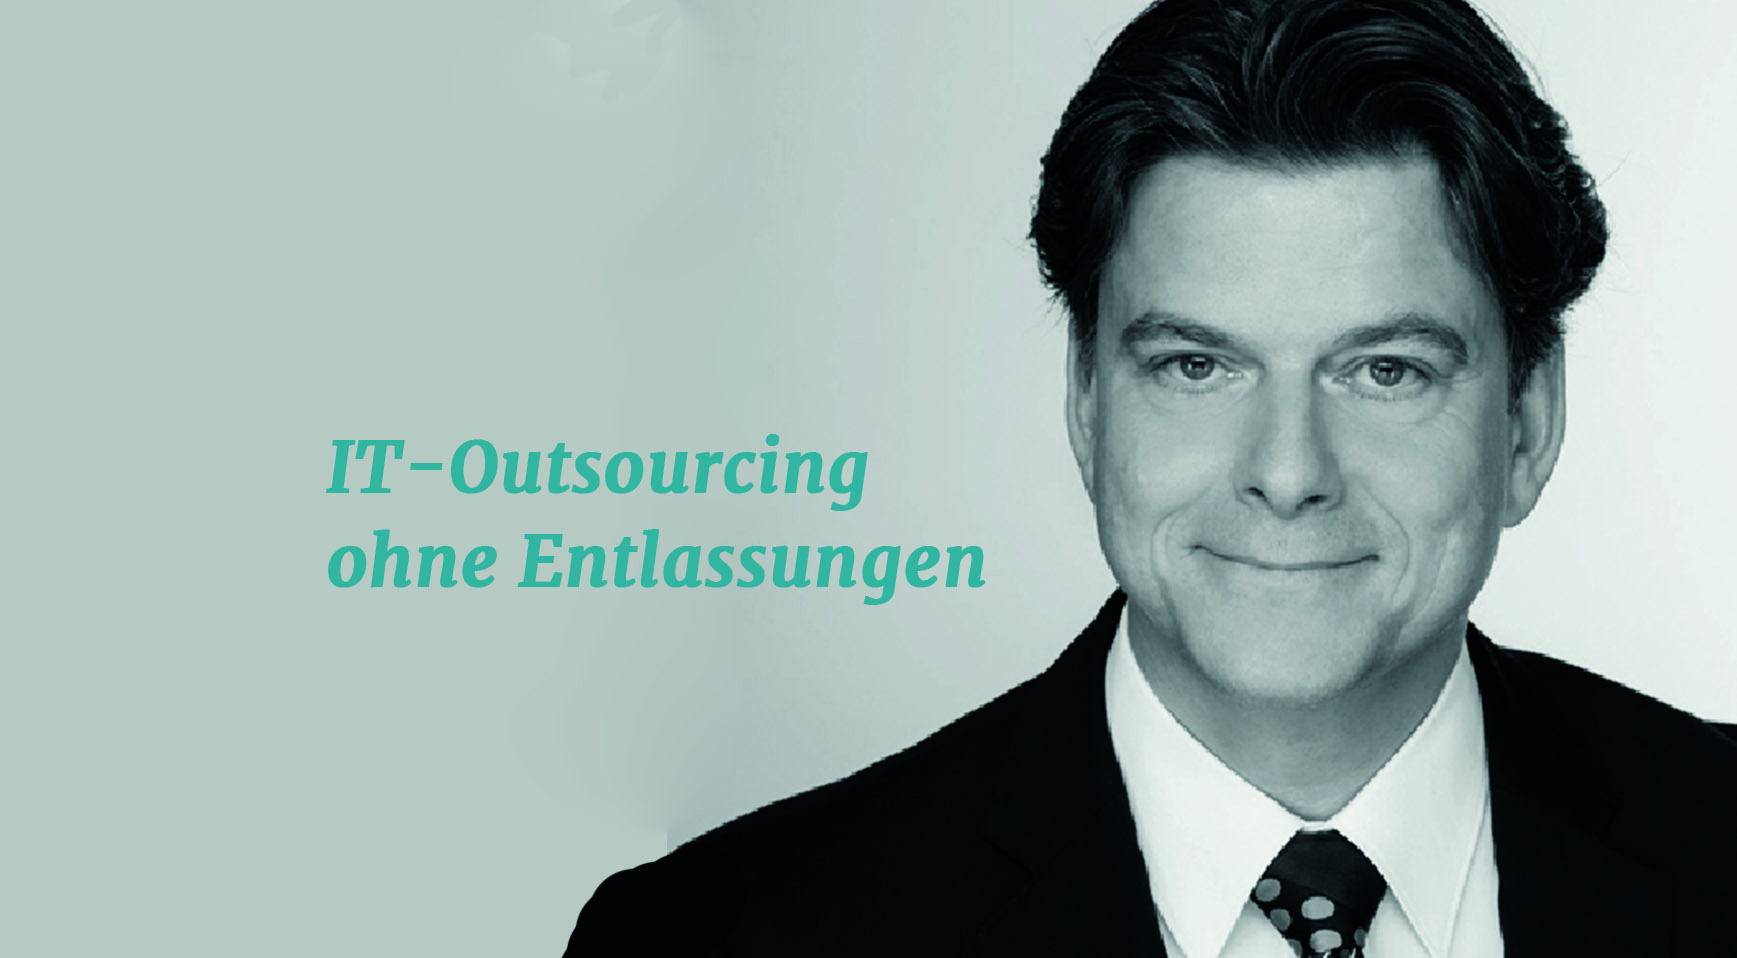 AXXCON IT-Outsourcing